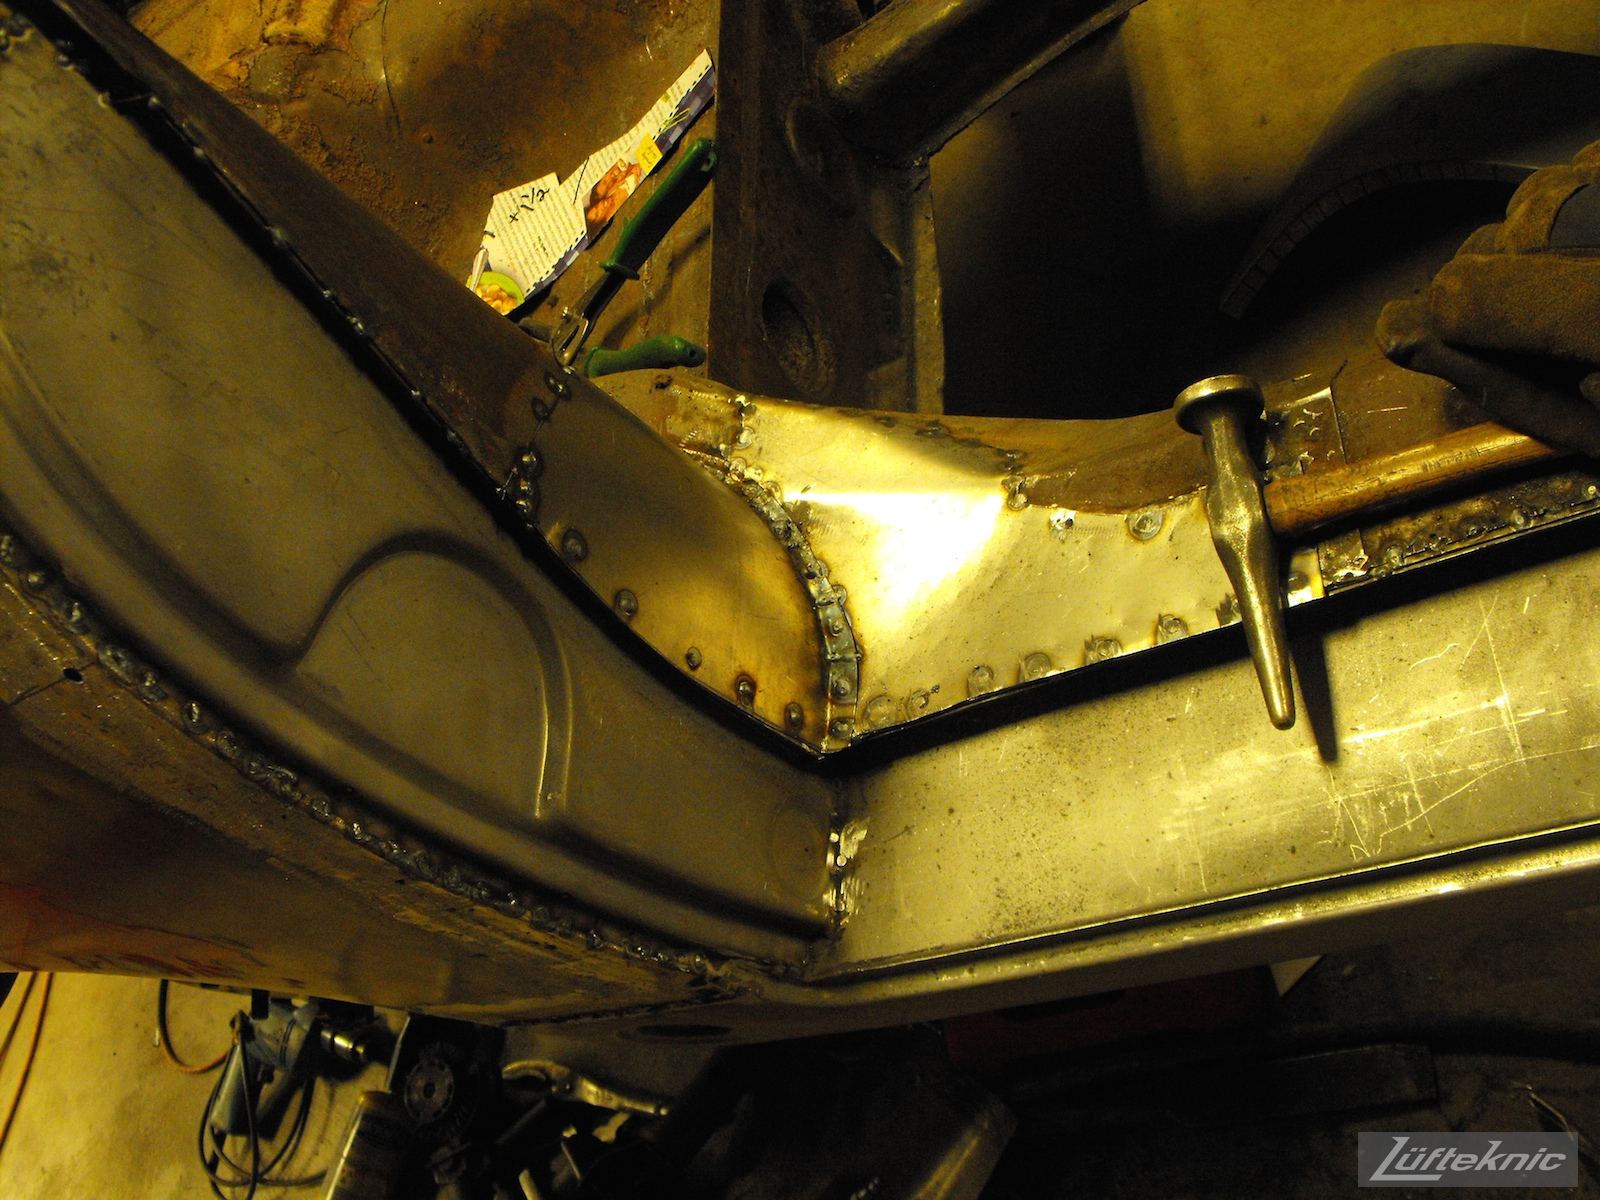 New repair panels welded into place on a 1961 Porsche 356B Roadster restoration.